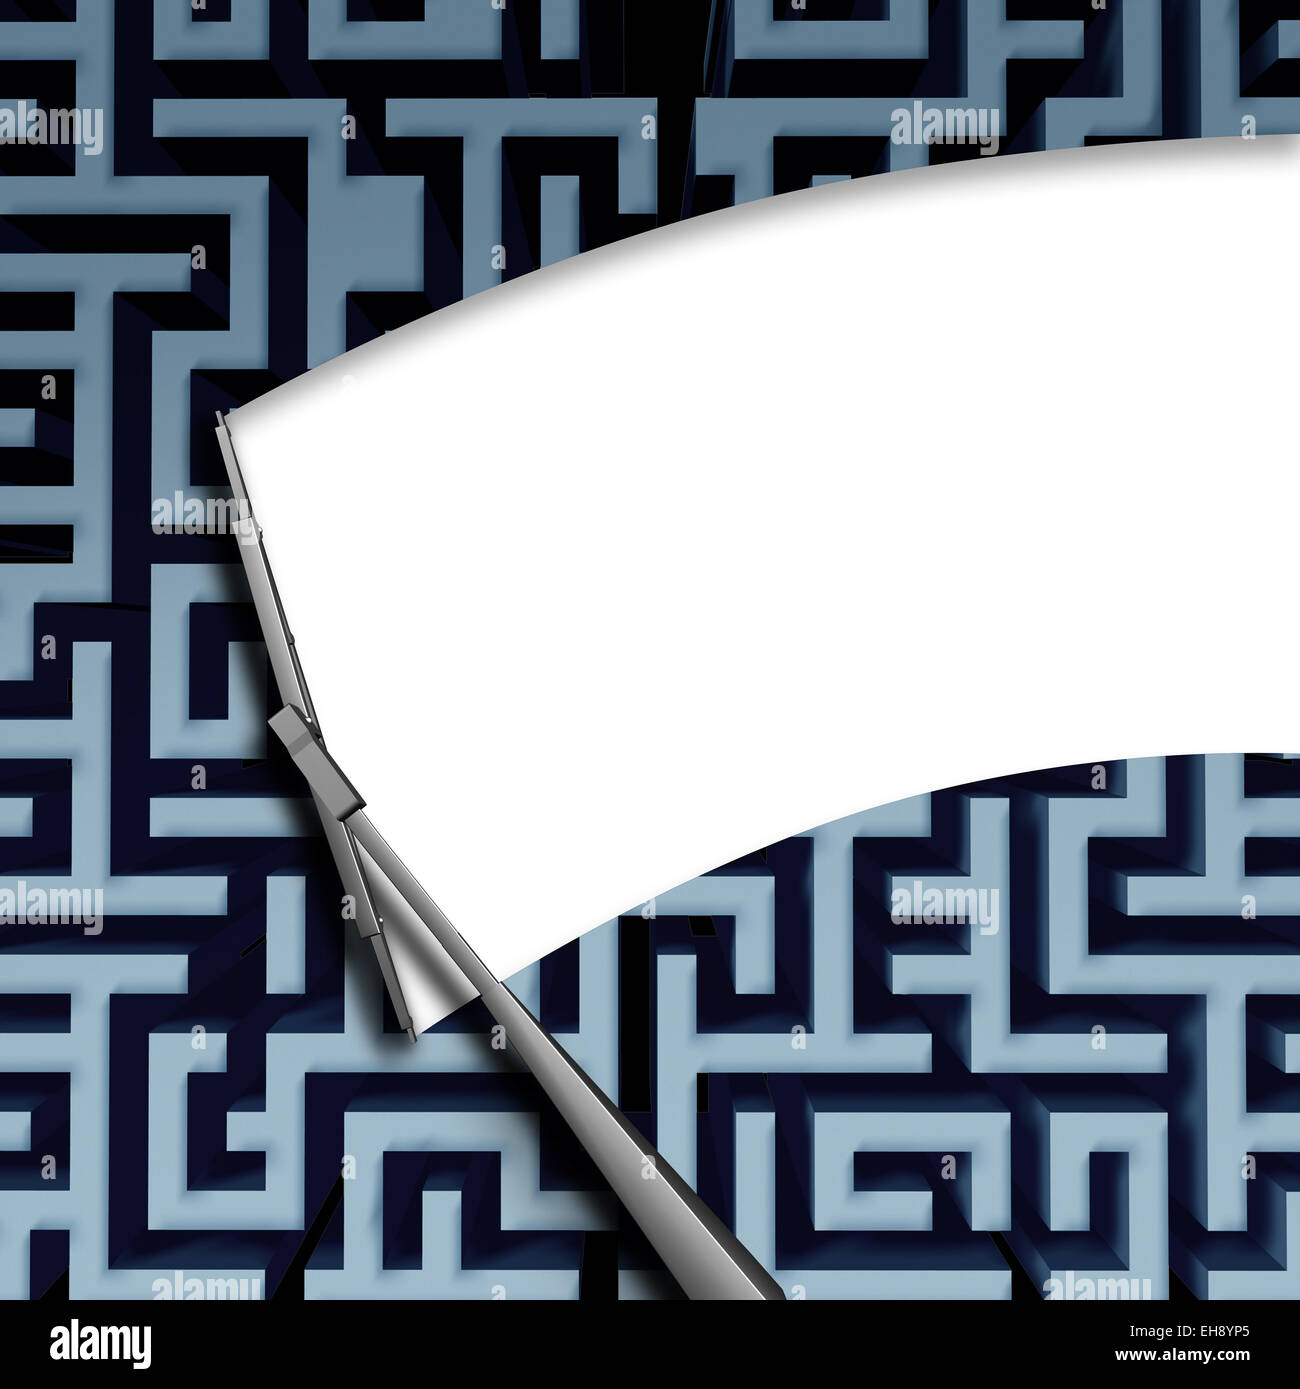 Clear solution concept with a windshield window wiper blade wiping off a complicated maze or labyrinth pattern as - Stock Image